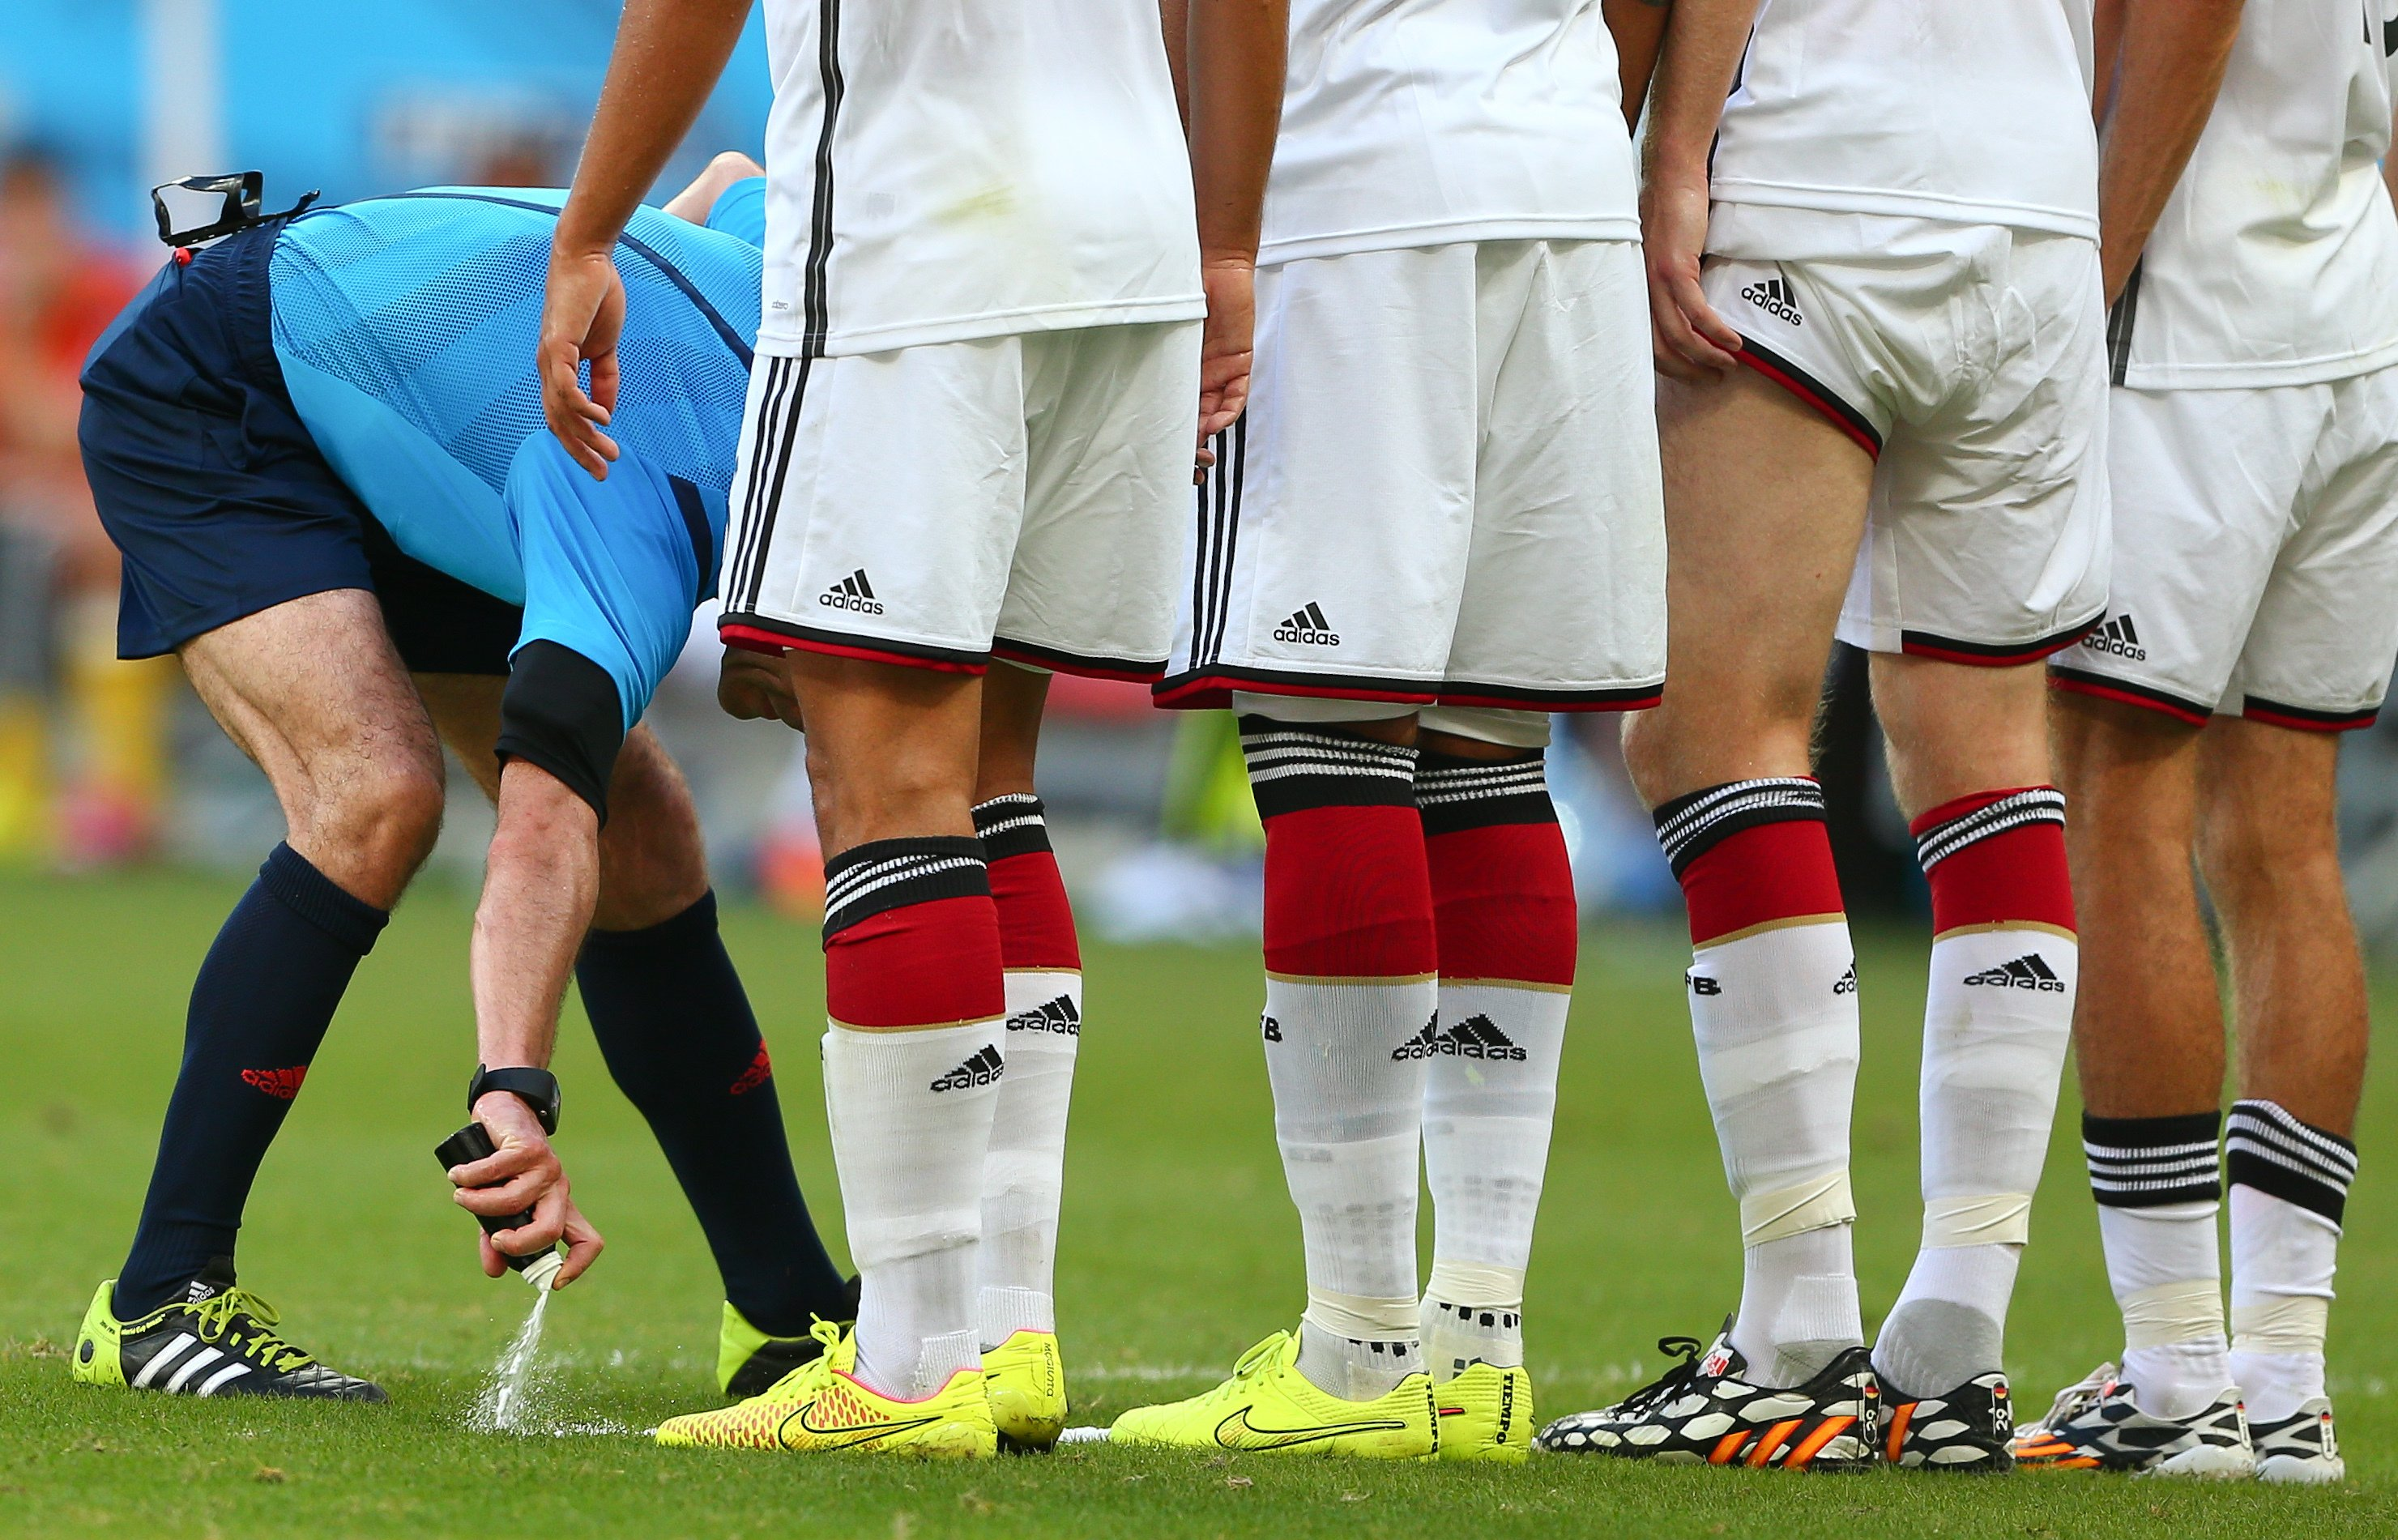 Referee Milorad Mazic uses vanishing spray to mark where the Germany wall must stand for a Portugal free kick during the 2014 FIFA World Cup Brazil Group G match between Germany and Portugal at Arena Fonte Nova.